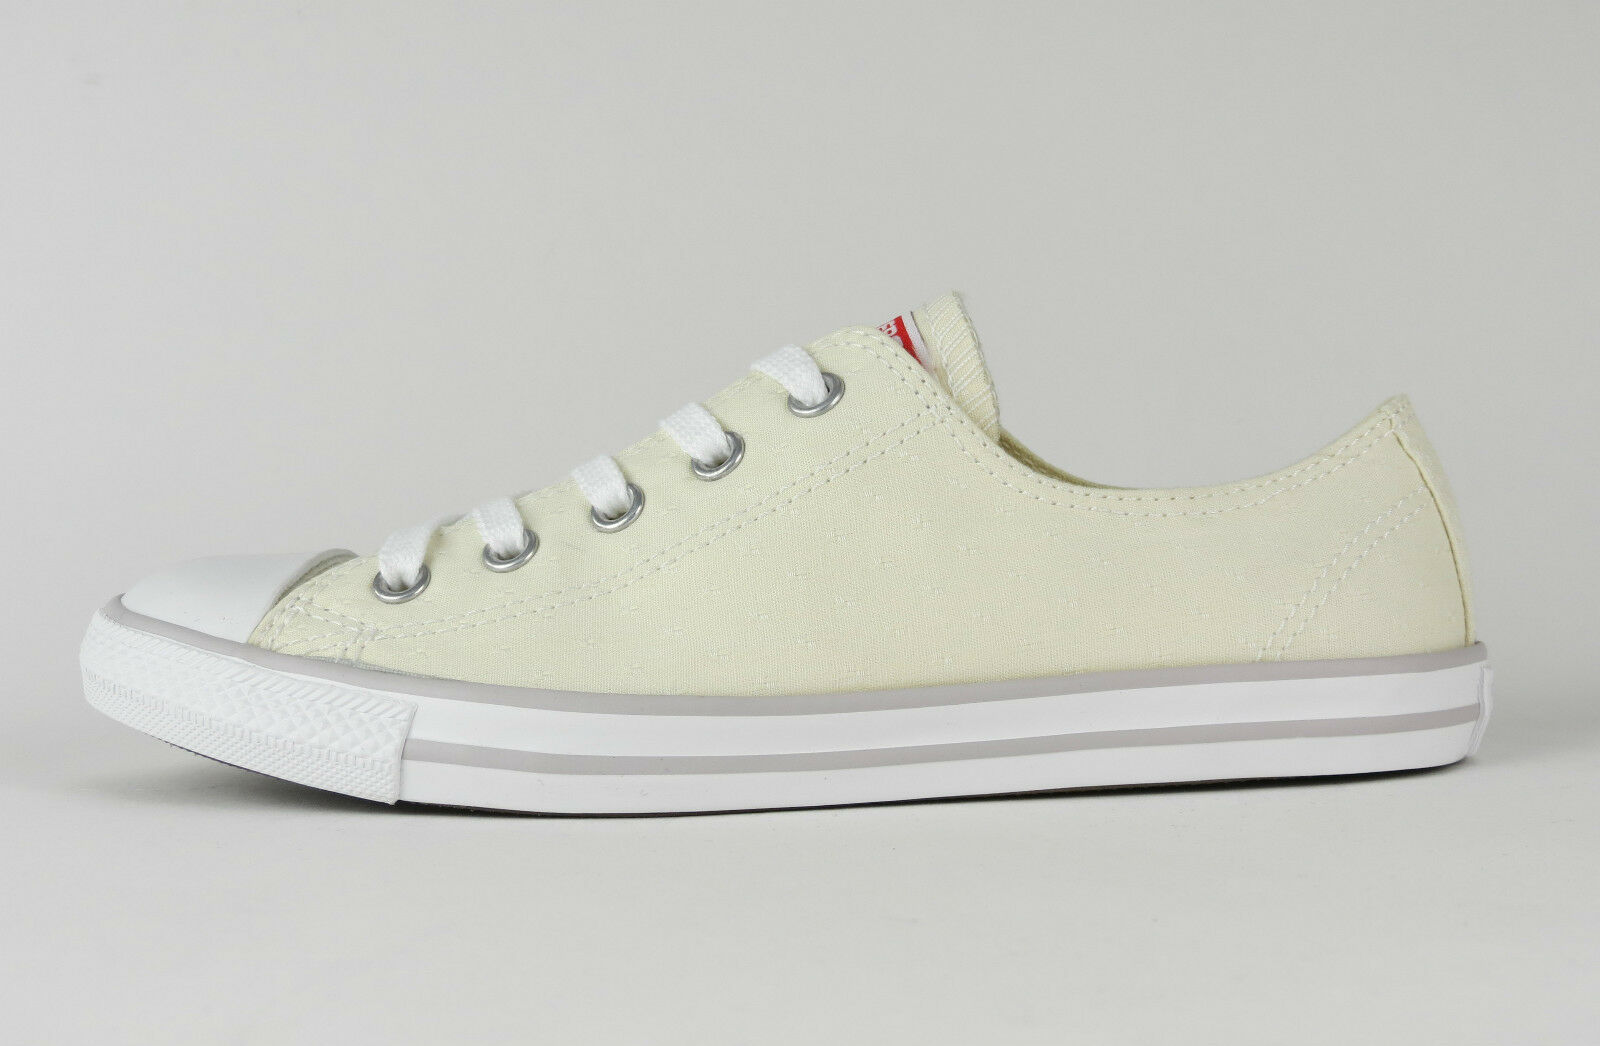 Converse Chucks - All Star CT Dainty OX - 547309C - Natural - creme +Neu+